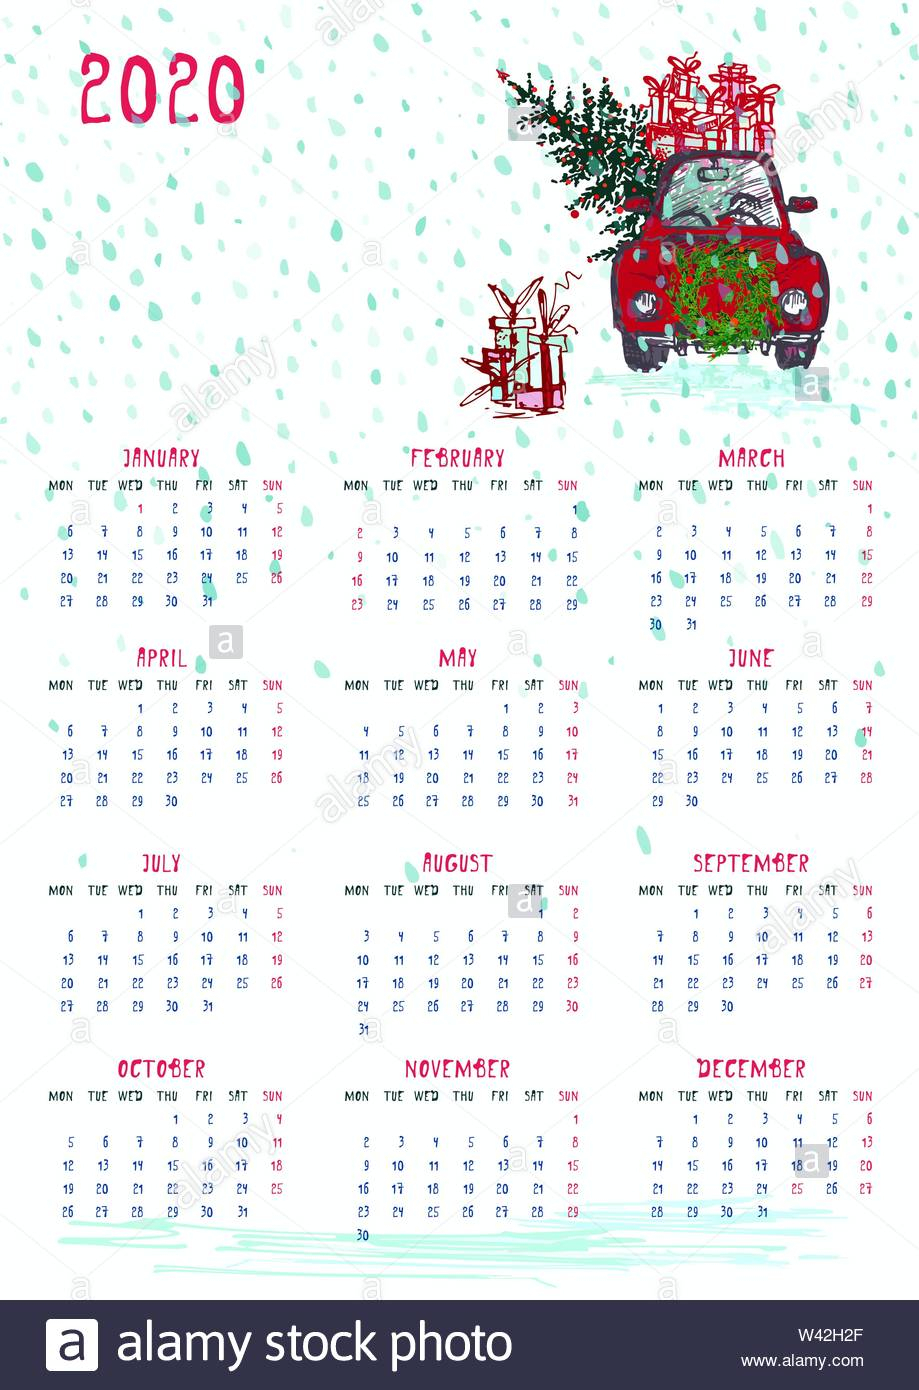 2020 Calendar Planner Whith Red Christmas Car, New Year Tree